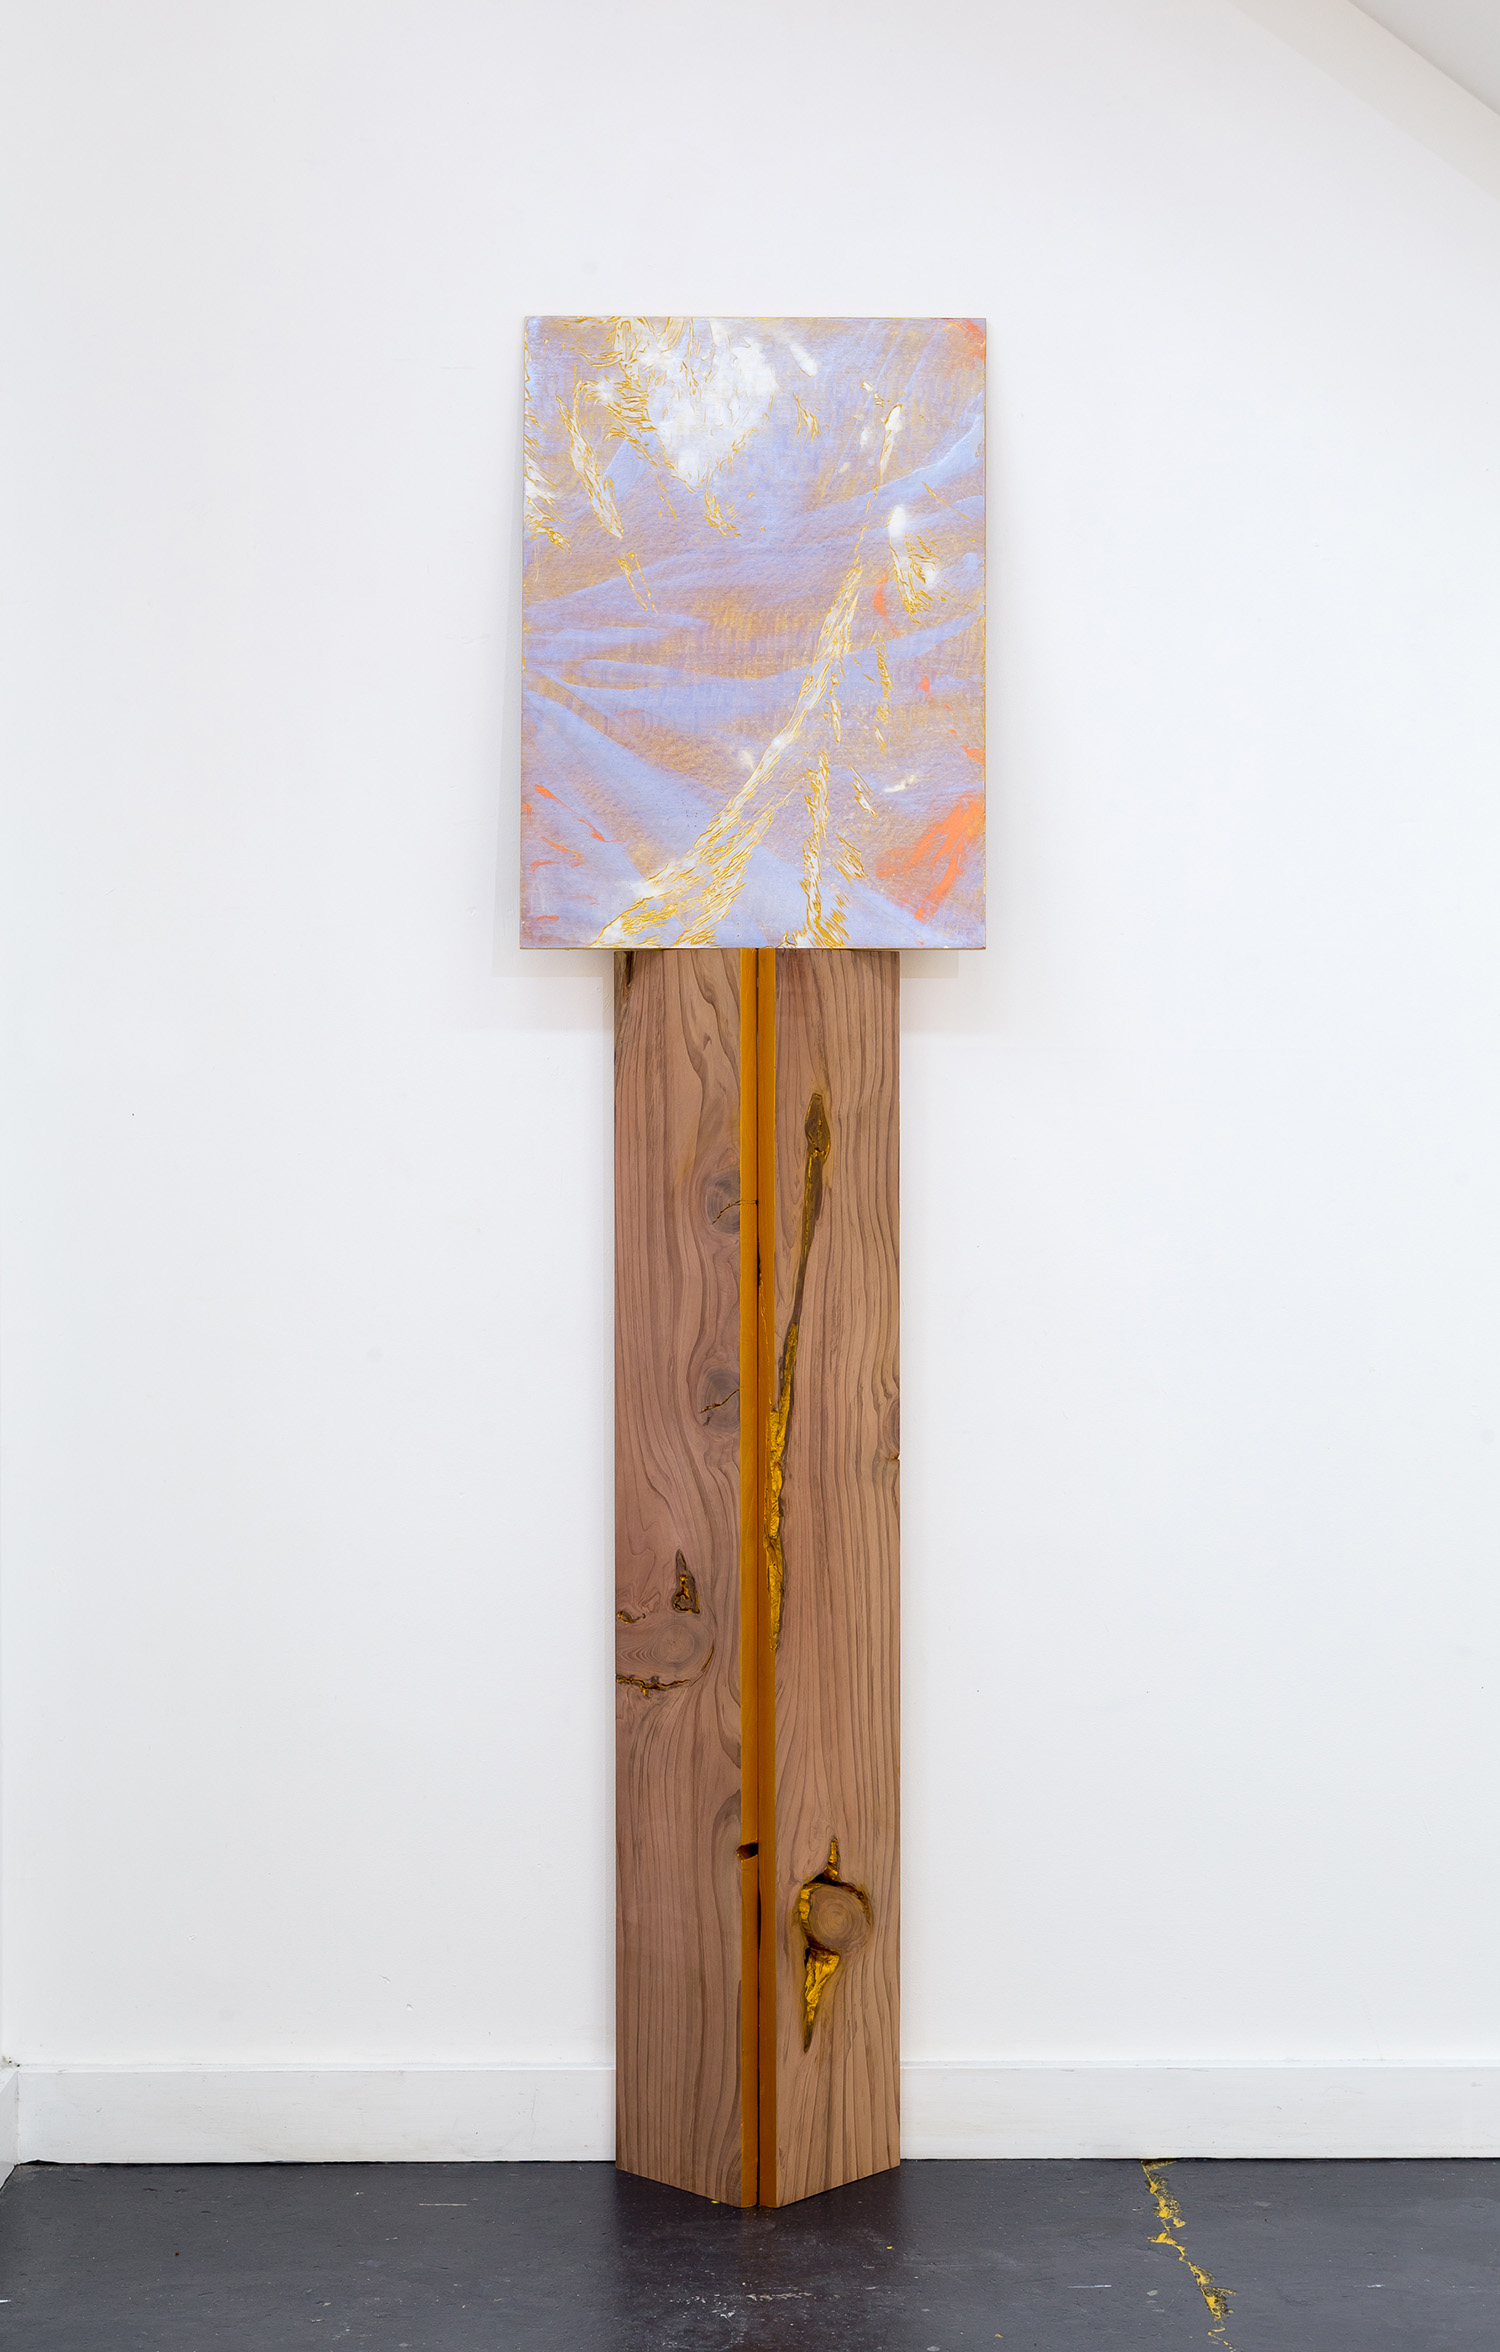 A moment (extended) , 2019, acrylic on engraved Silky Oak ply, 61x44cm; support, acrylic on Californian Redwood, 115.5x27x17cm.  Image: André Piguet